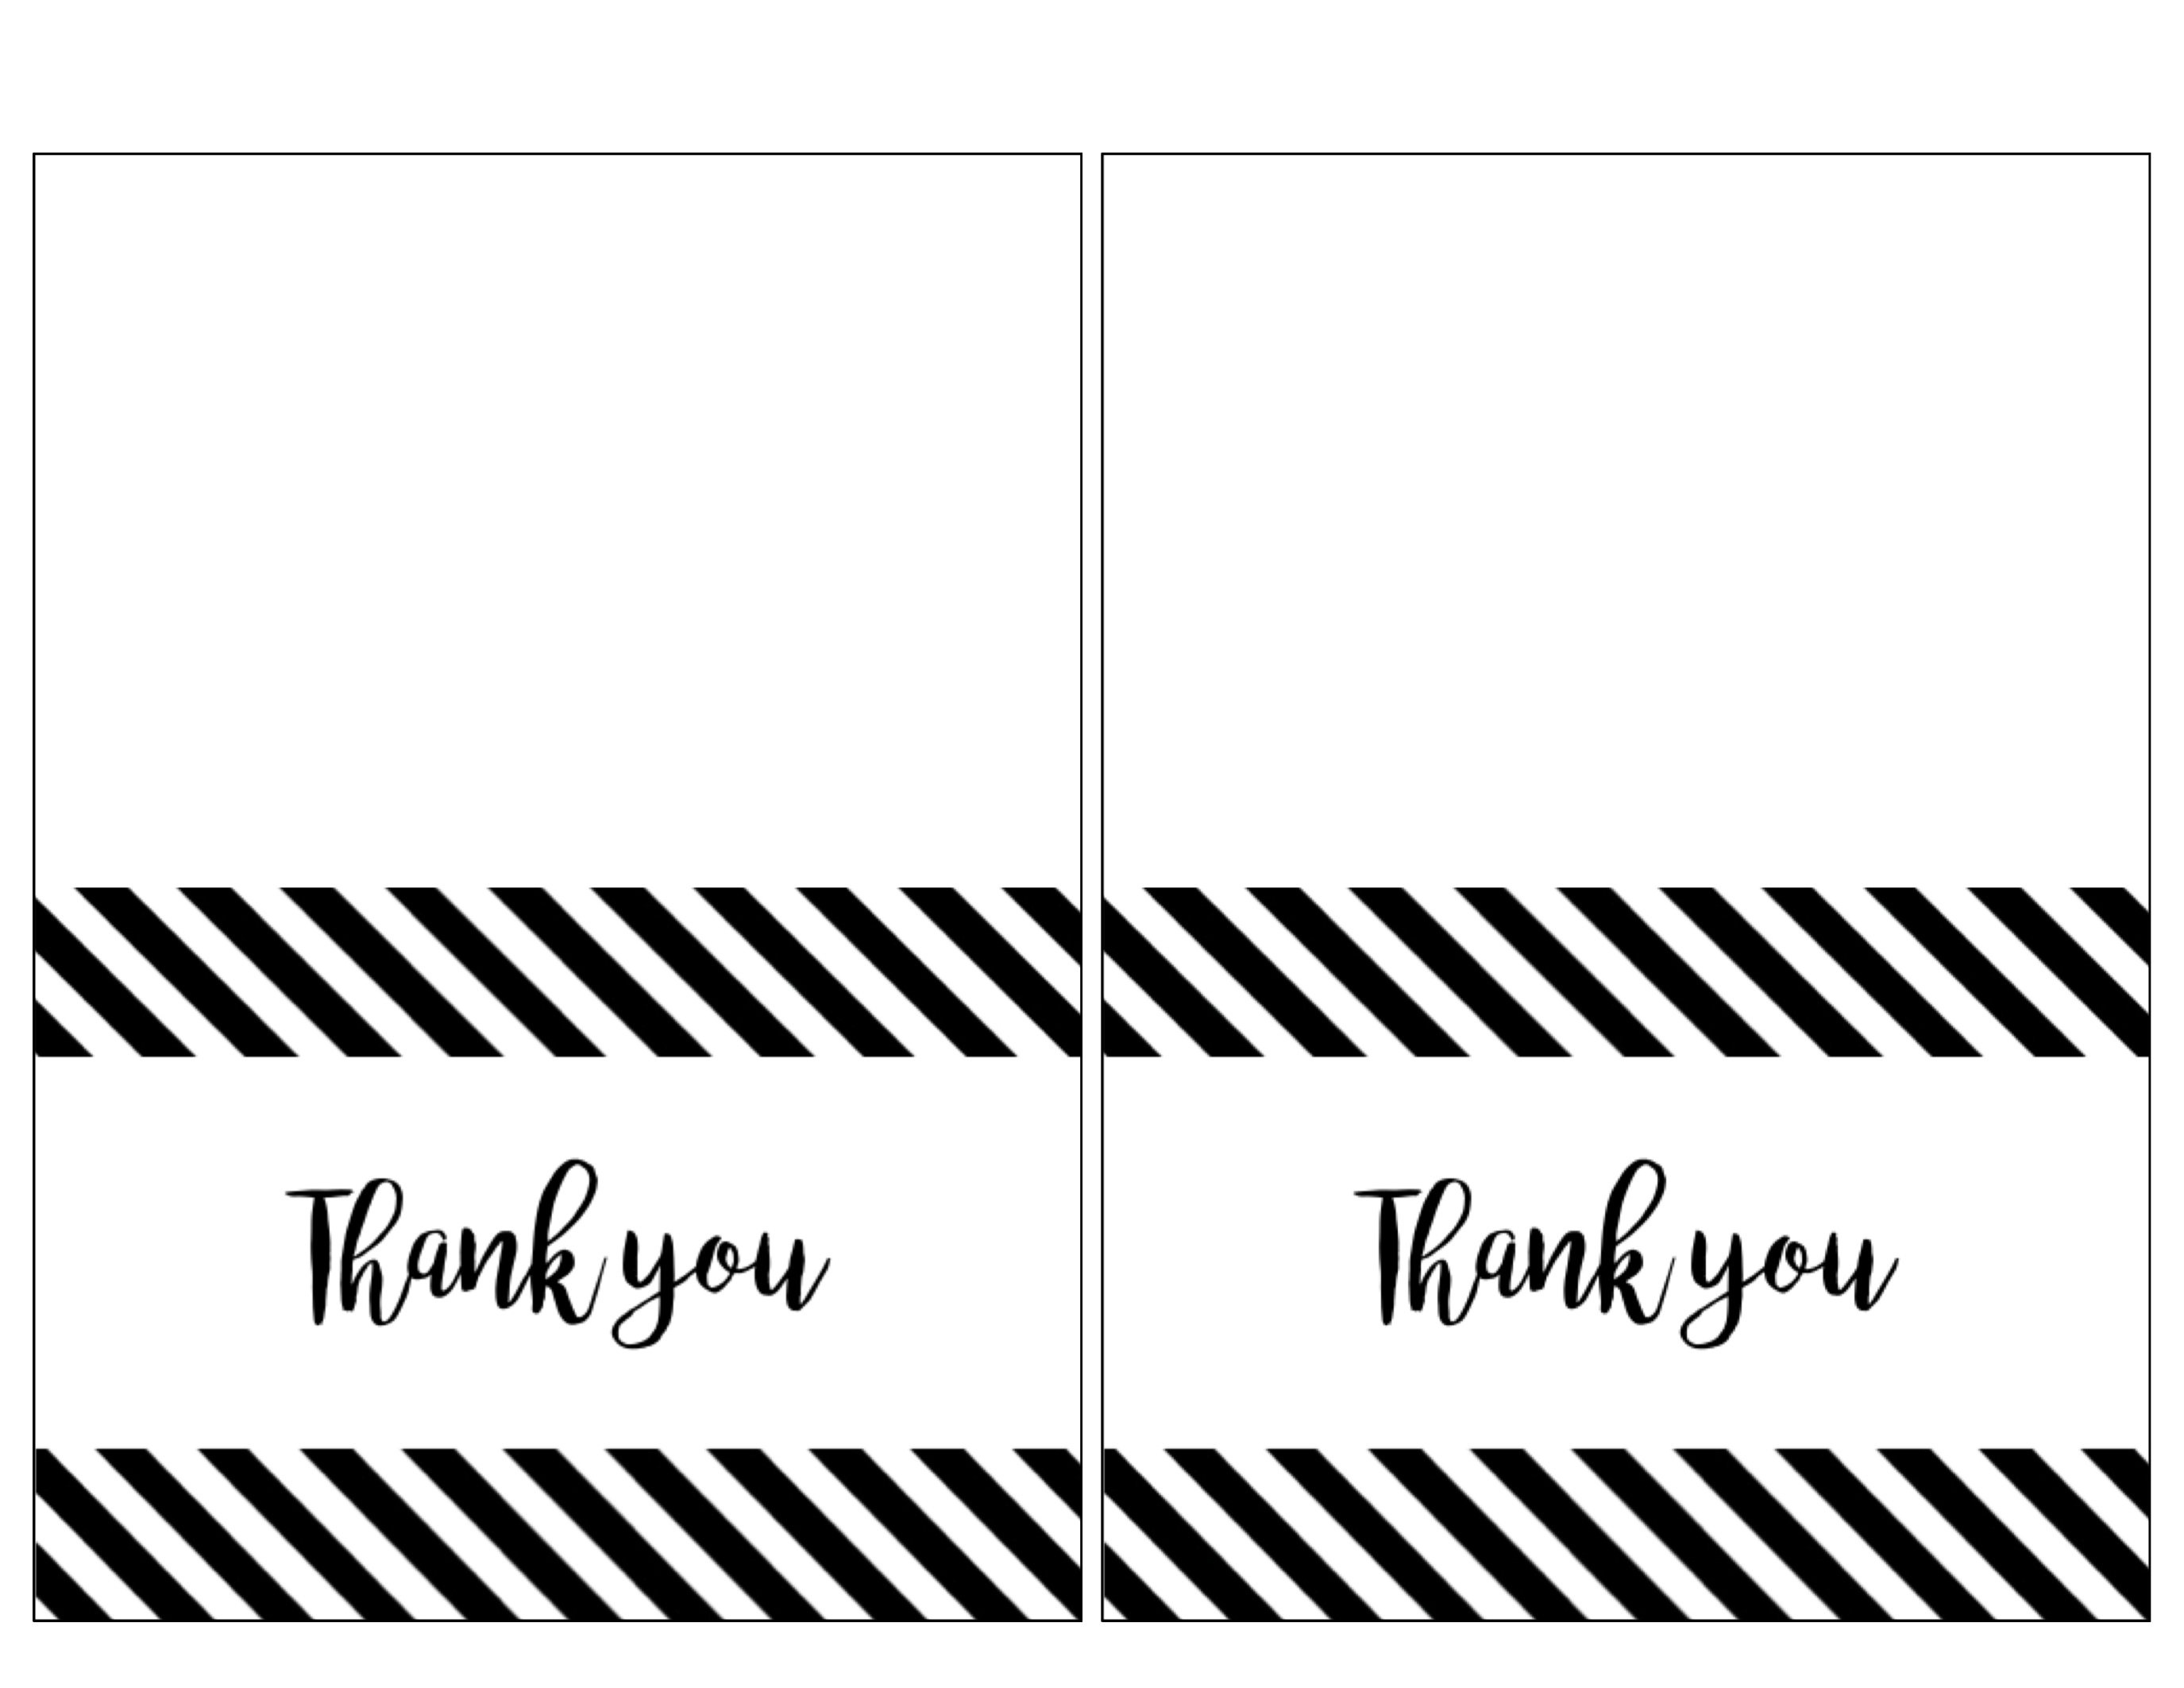 Thank You Cards To Print Free - Demir.iso-Consulting.co - Free Printable Thank You Notes